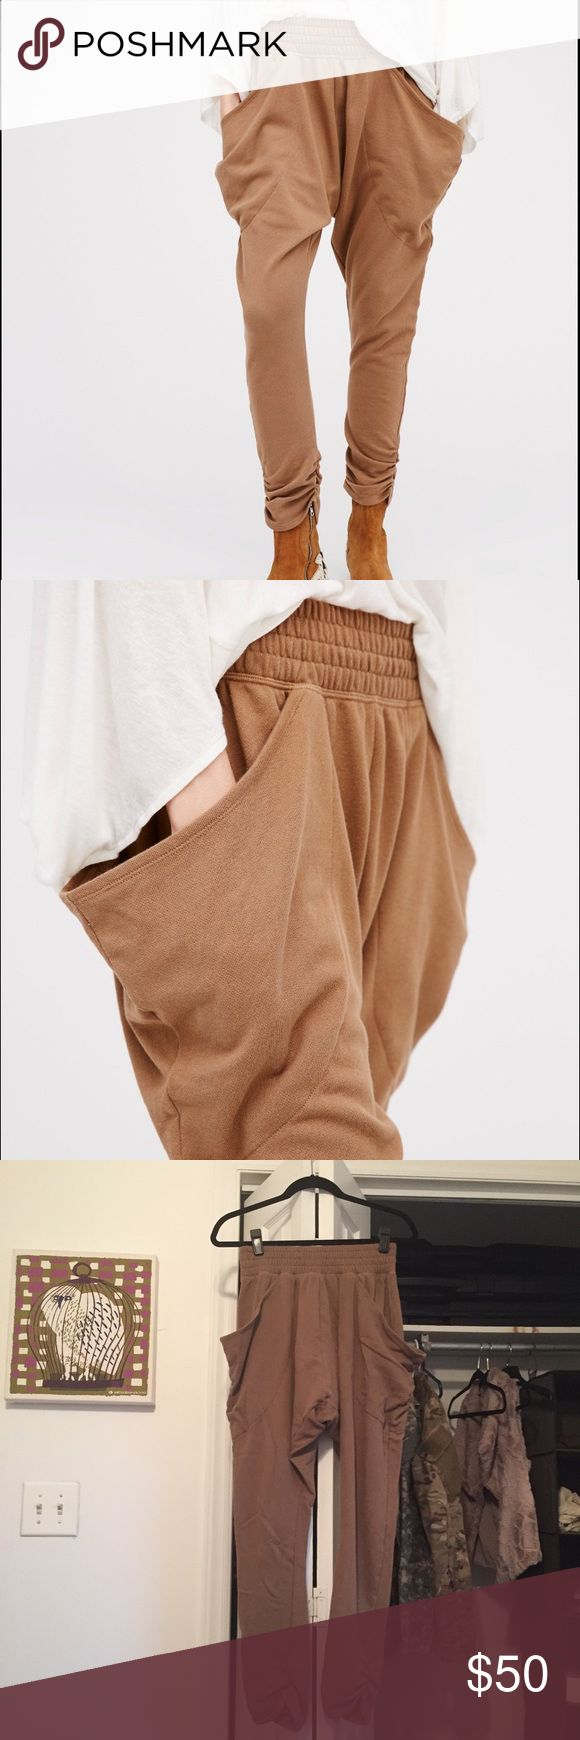 """FP harem pants """"So cool Harem Pant"""". Worn once briefly, perfect condition. *** Ultra comfy harem sweatpants featuring exaggerated hip pockets and elastic waistband for an effortless fit. Tapered leg with gathered hem detailing.  *95% Rayon *5% Spandex  Measurements for size: Small *Waist: 27.0 = 68.58 *Hips: 49.0 = 124.46 *Rise: 12.75 = 32.38 *Inseam: 26.5 = 67.31 Free People Pants Track Pants & Joggers"""